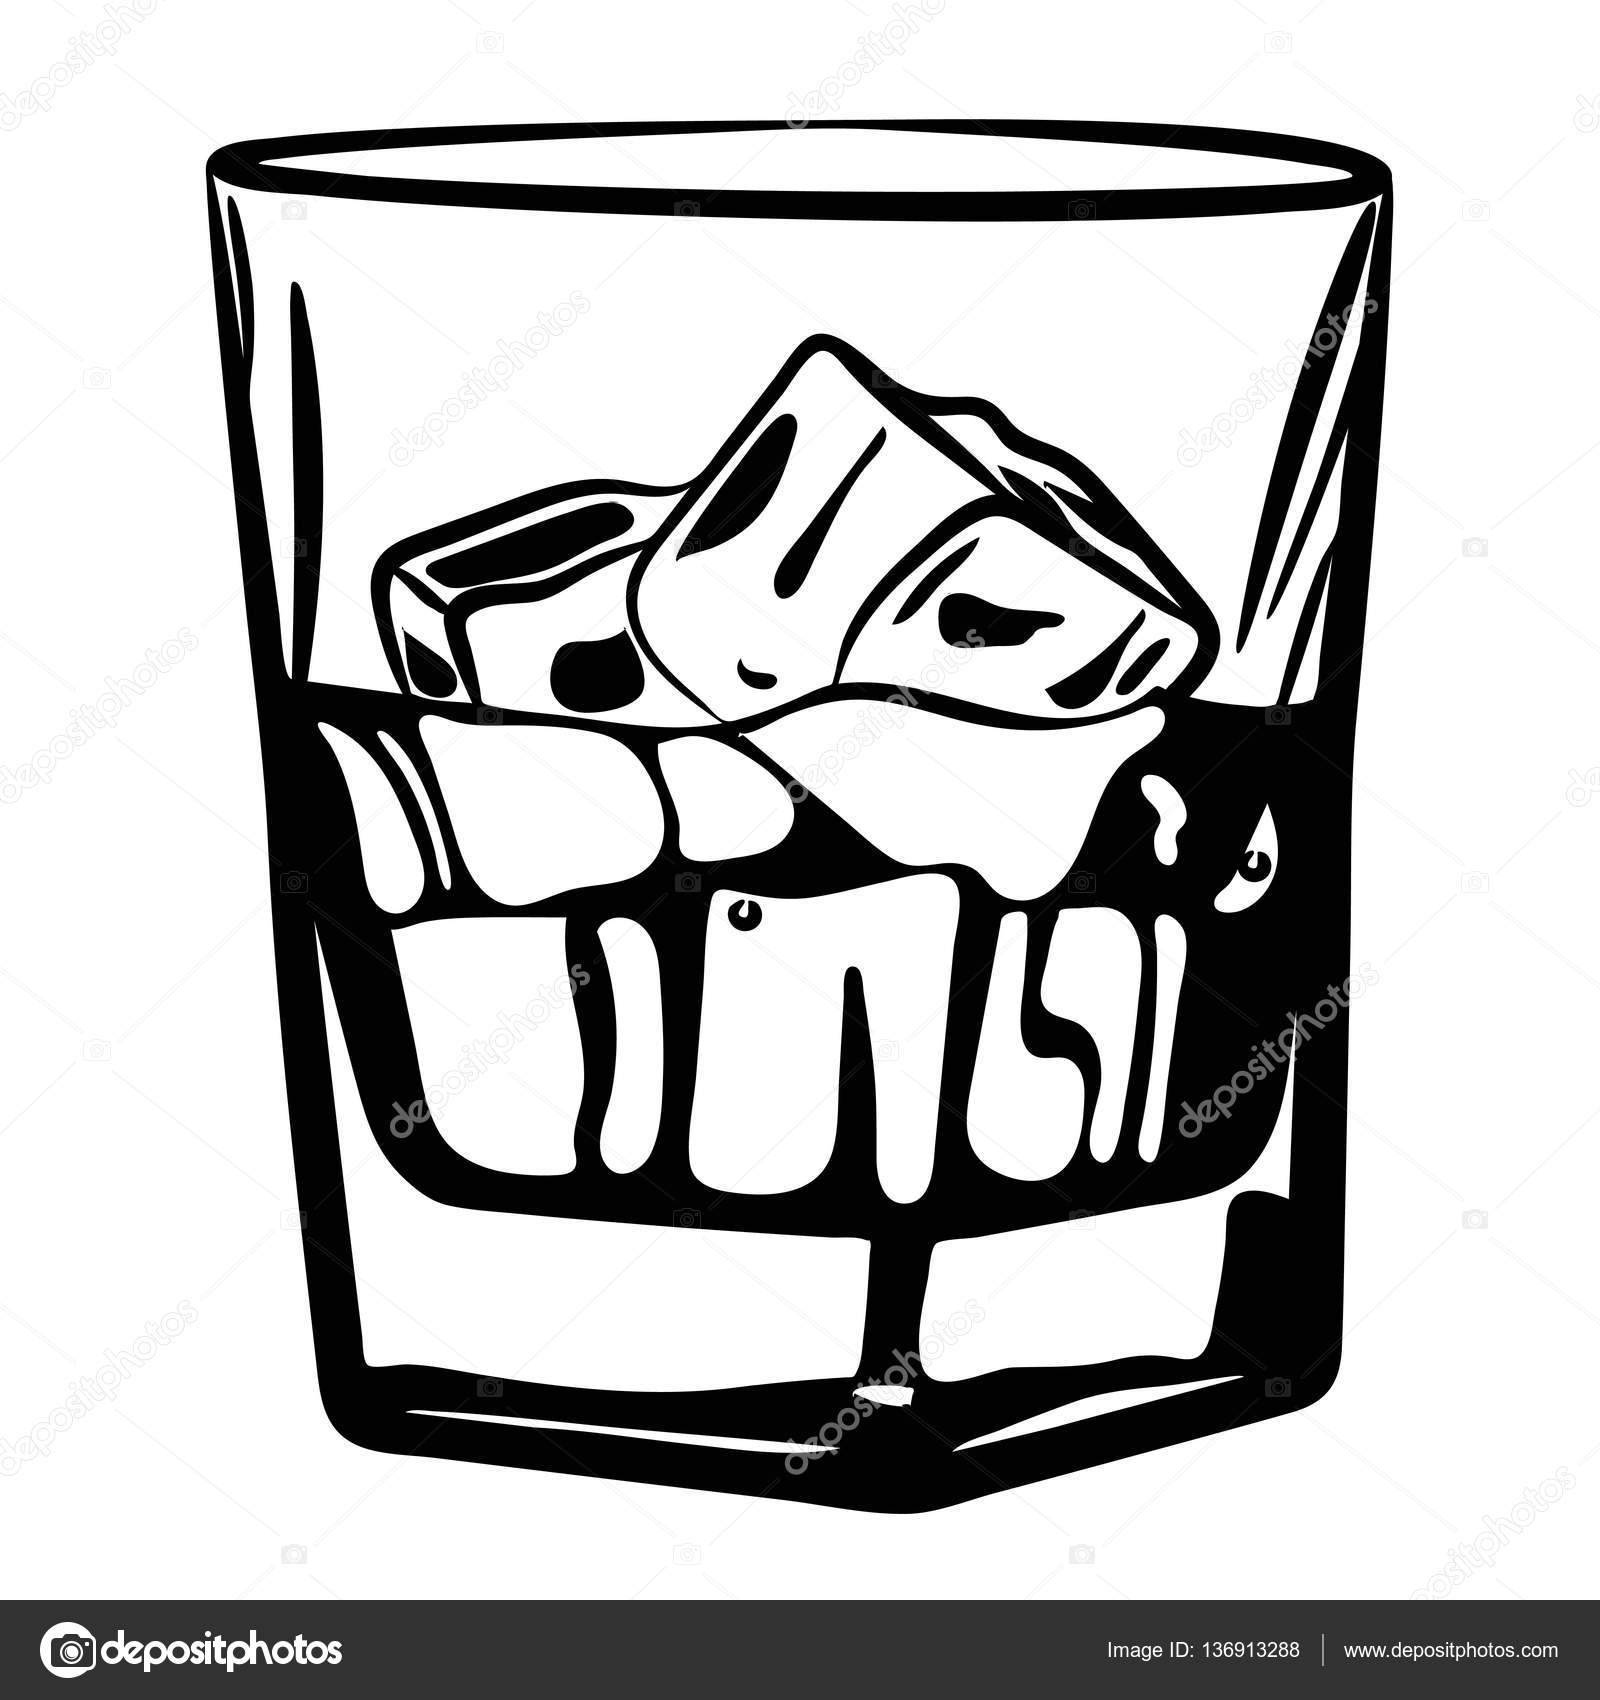 whiskey drawing at getdrawings com free for personal use whiskey rh getdrawings com Old-Fashioned Farming Tools Clip Art Old-Fashioned Drink